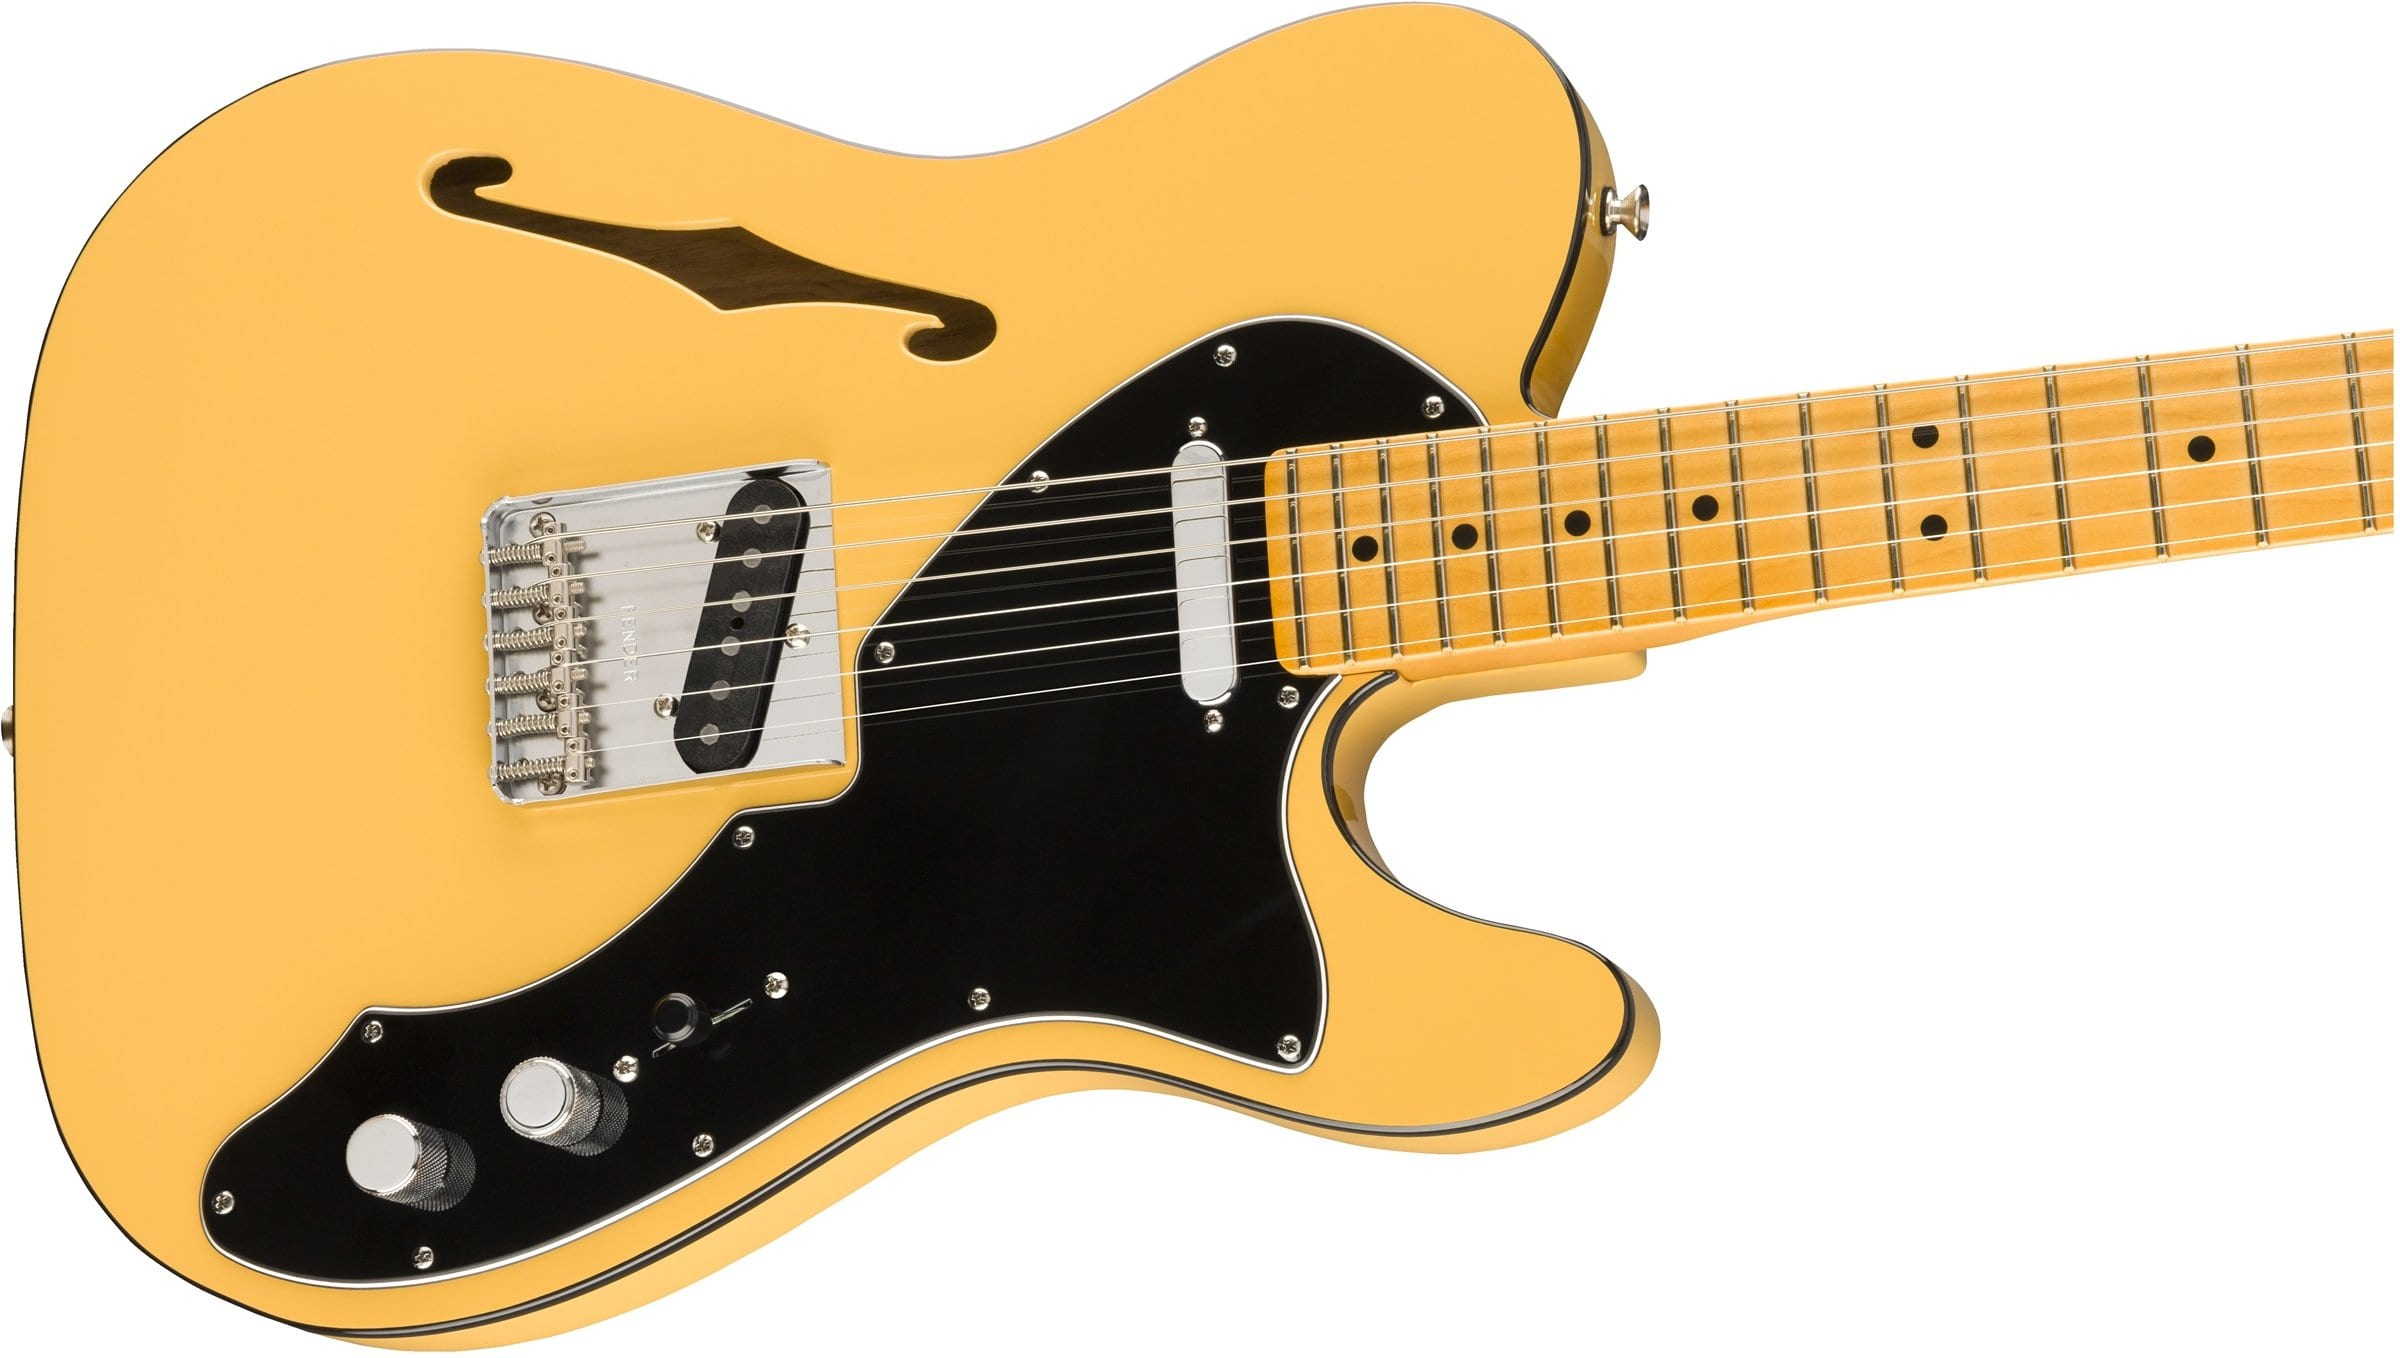 Fender Britt Daniel Tele Thinline with six saddle bridge